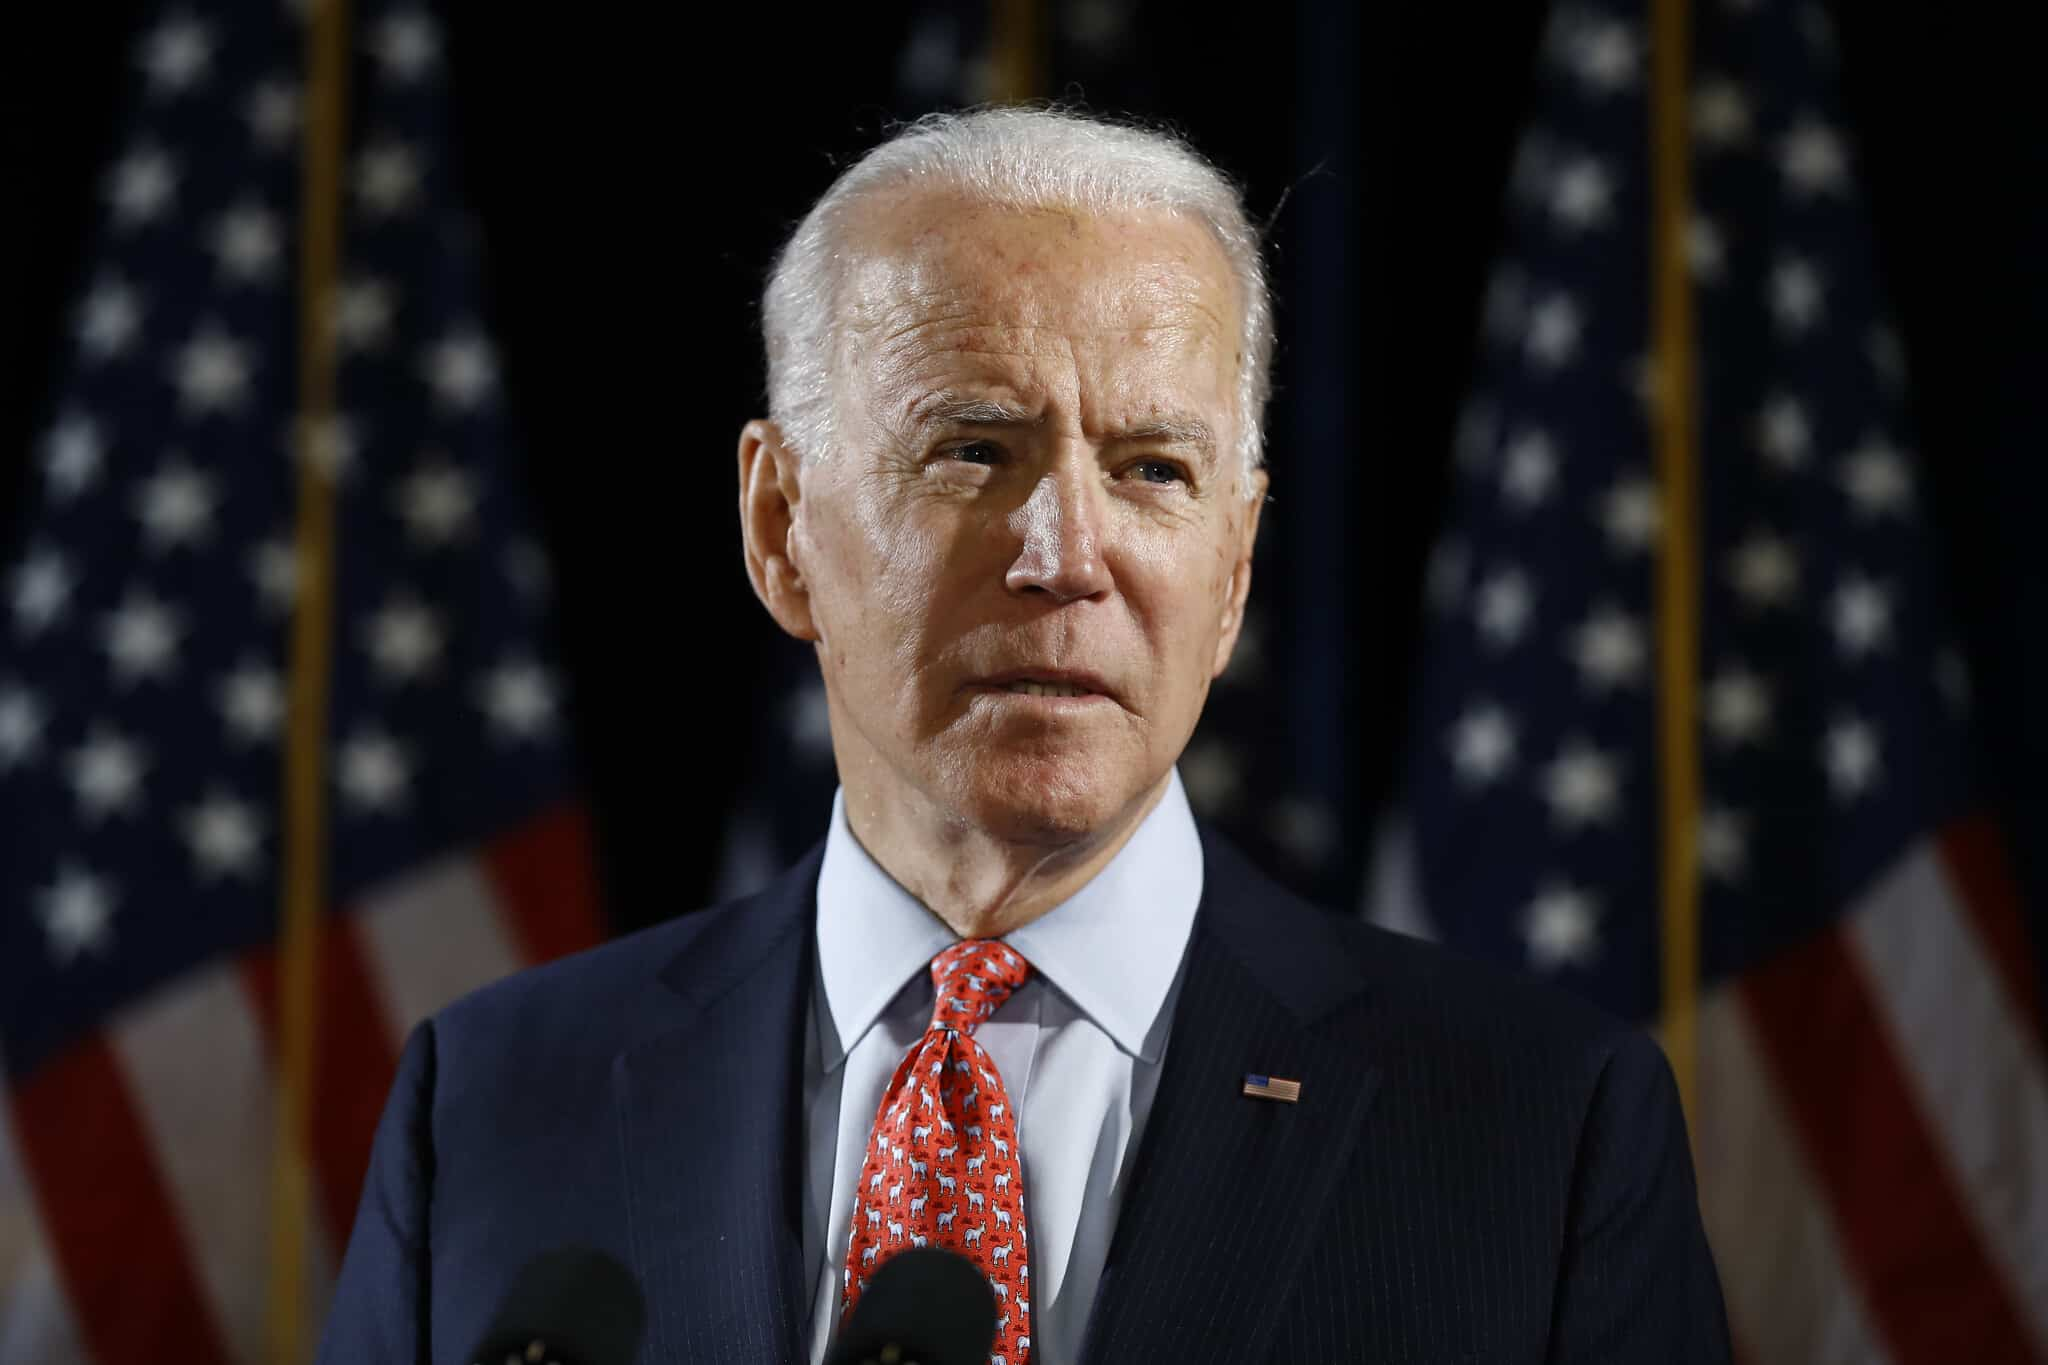 Biden's Jerusalem Embassy Statement Reveals Electoral Weaknesses